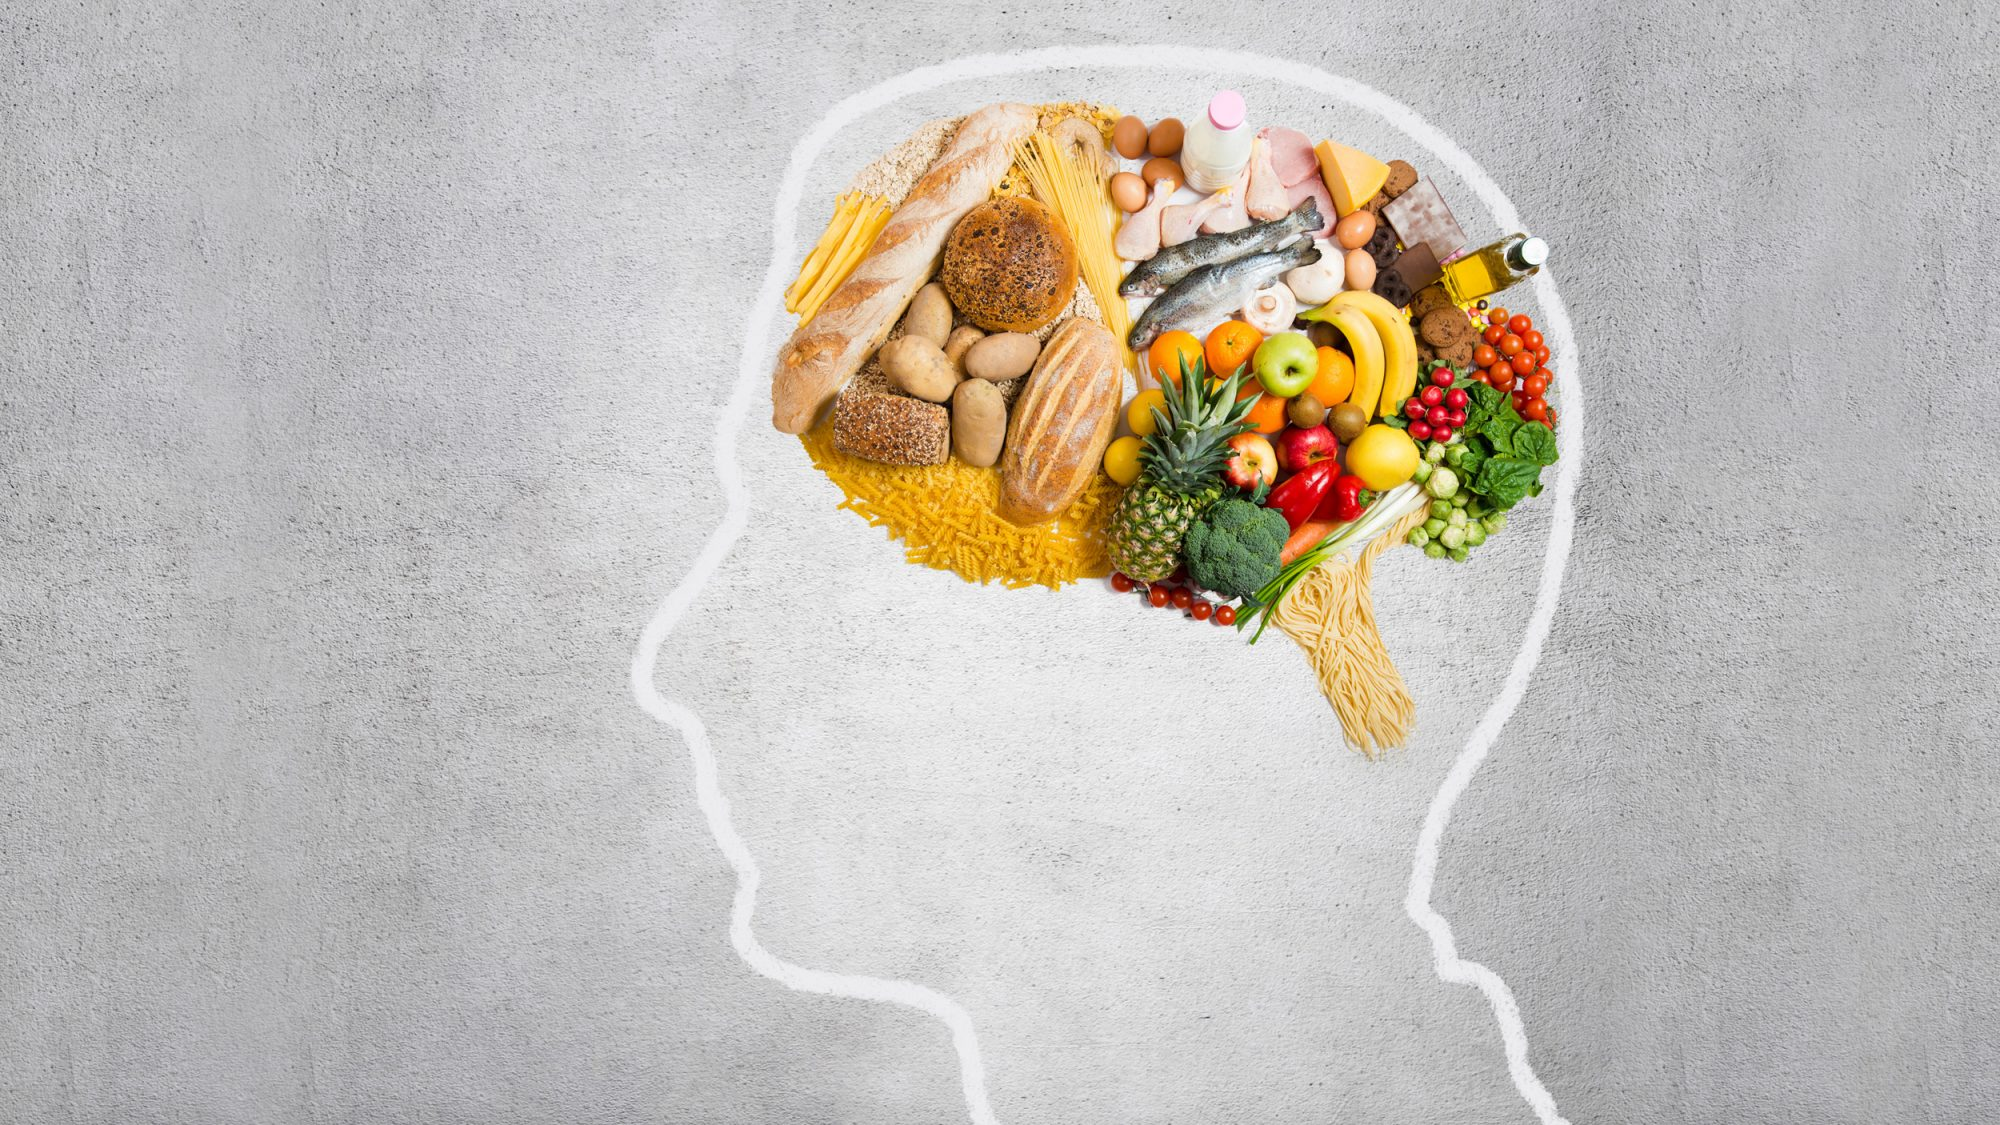 VIDEO: What You Eat Changes How You Think